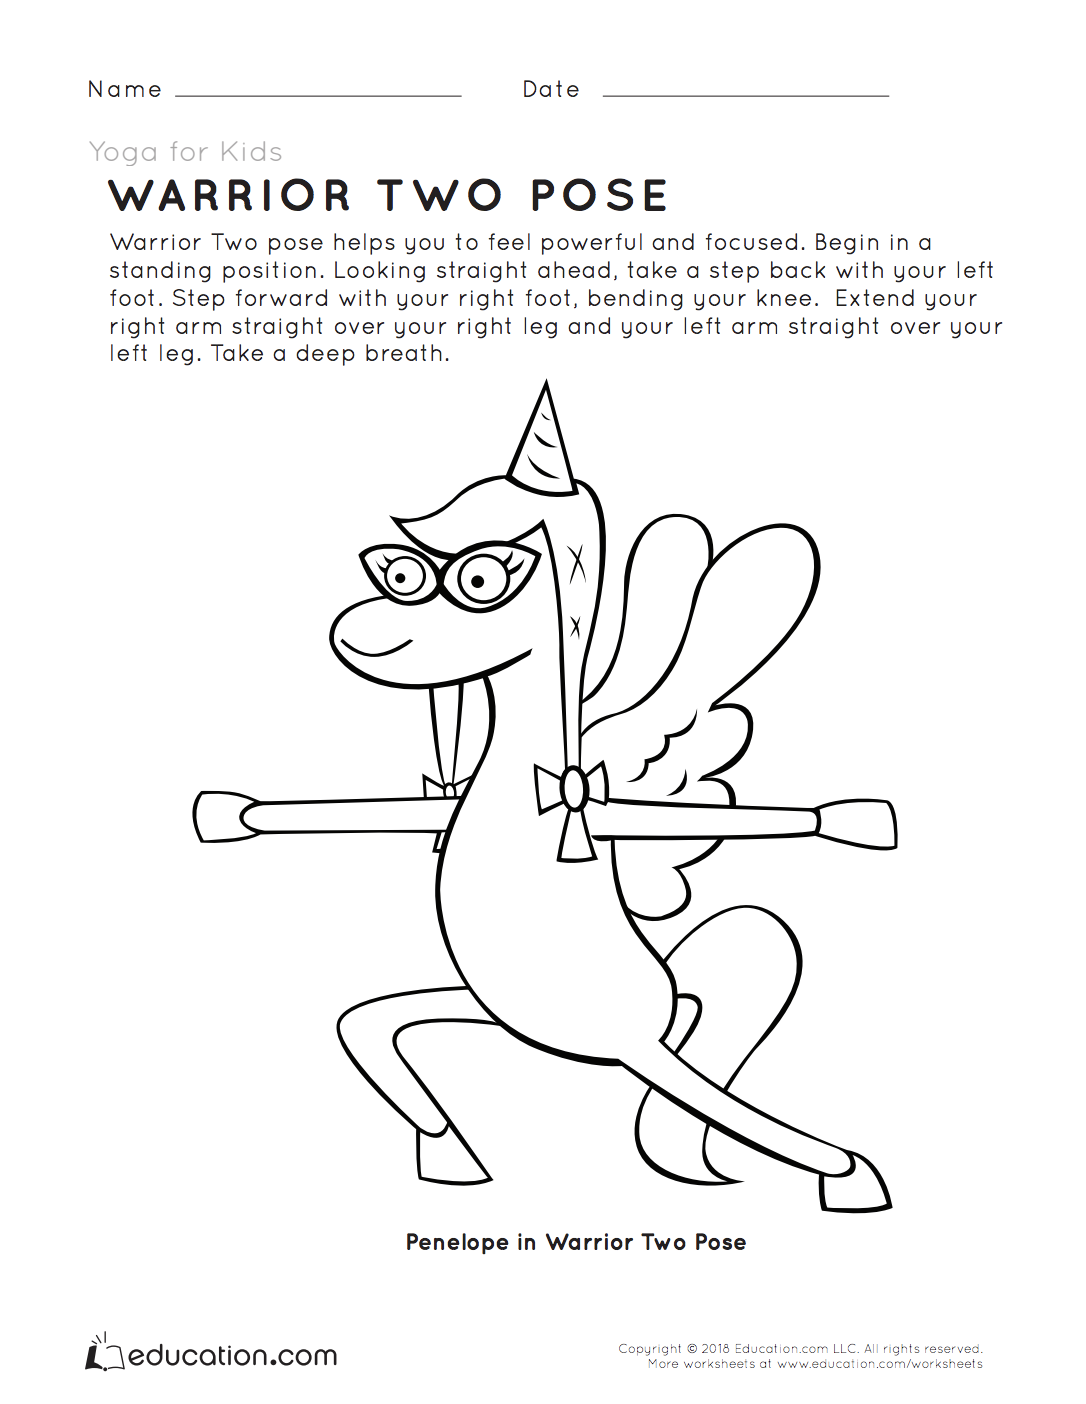 Yoga For Kids Warrior Two Pose